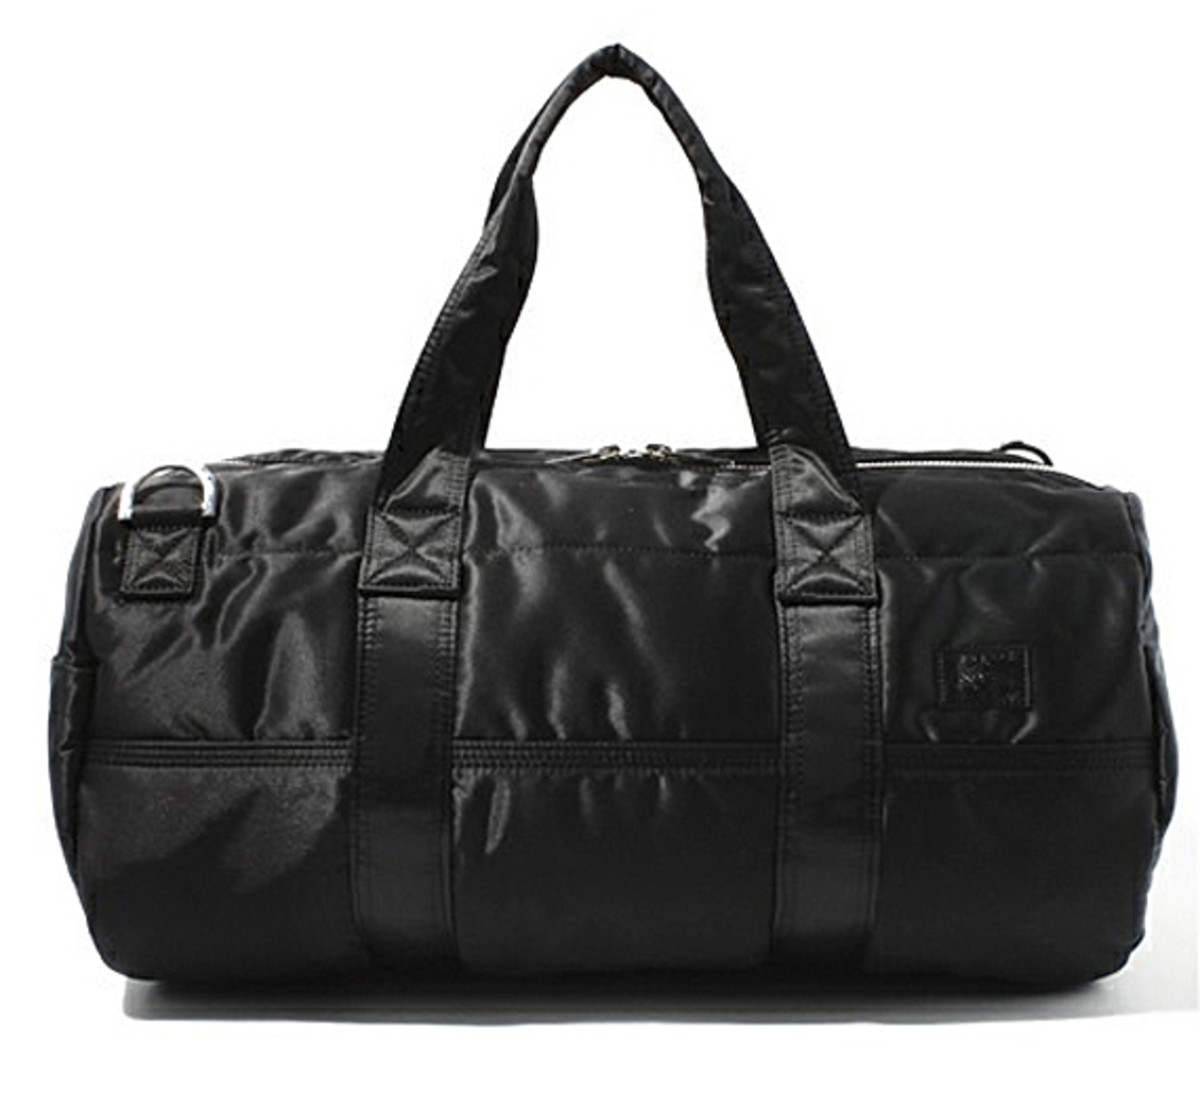 mastermind-JAPAN-PORTER-Drum-Boston-Bag-02